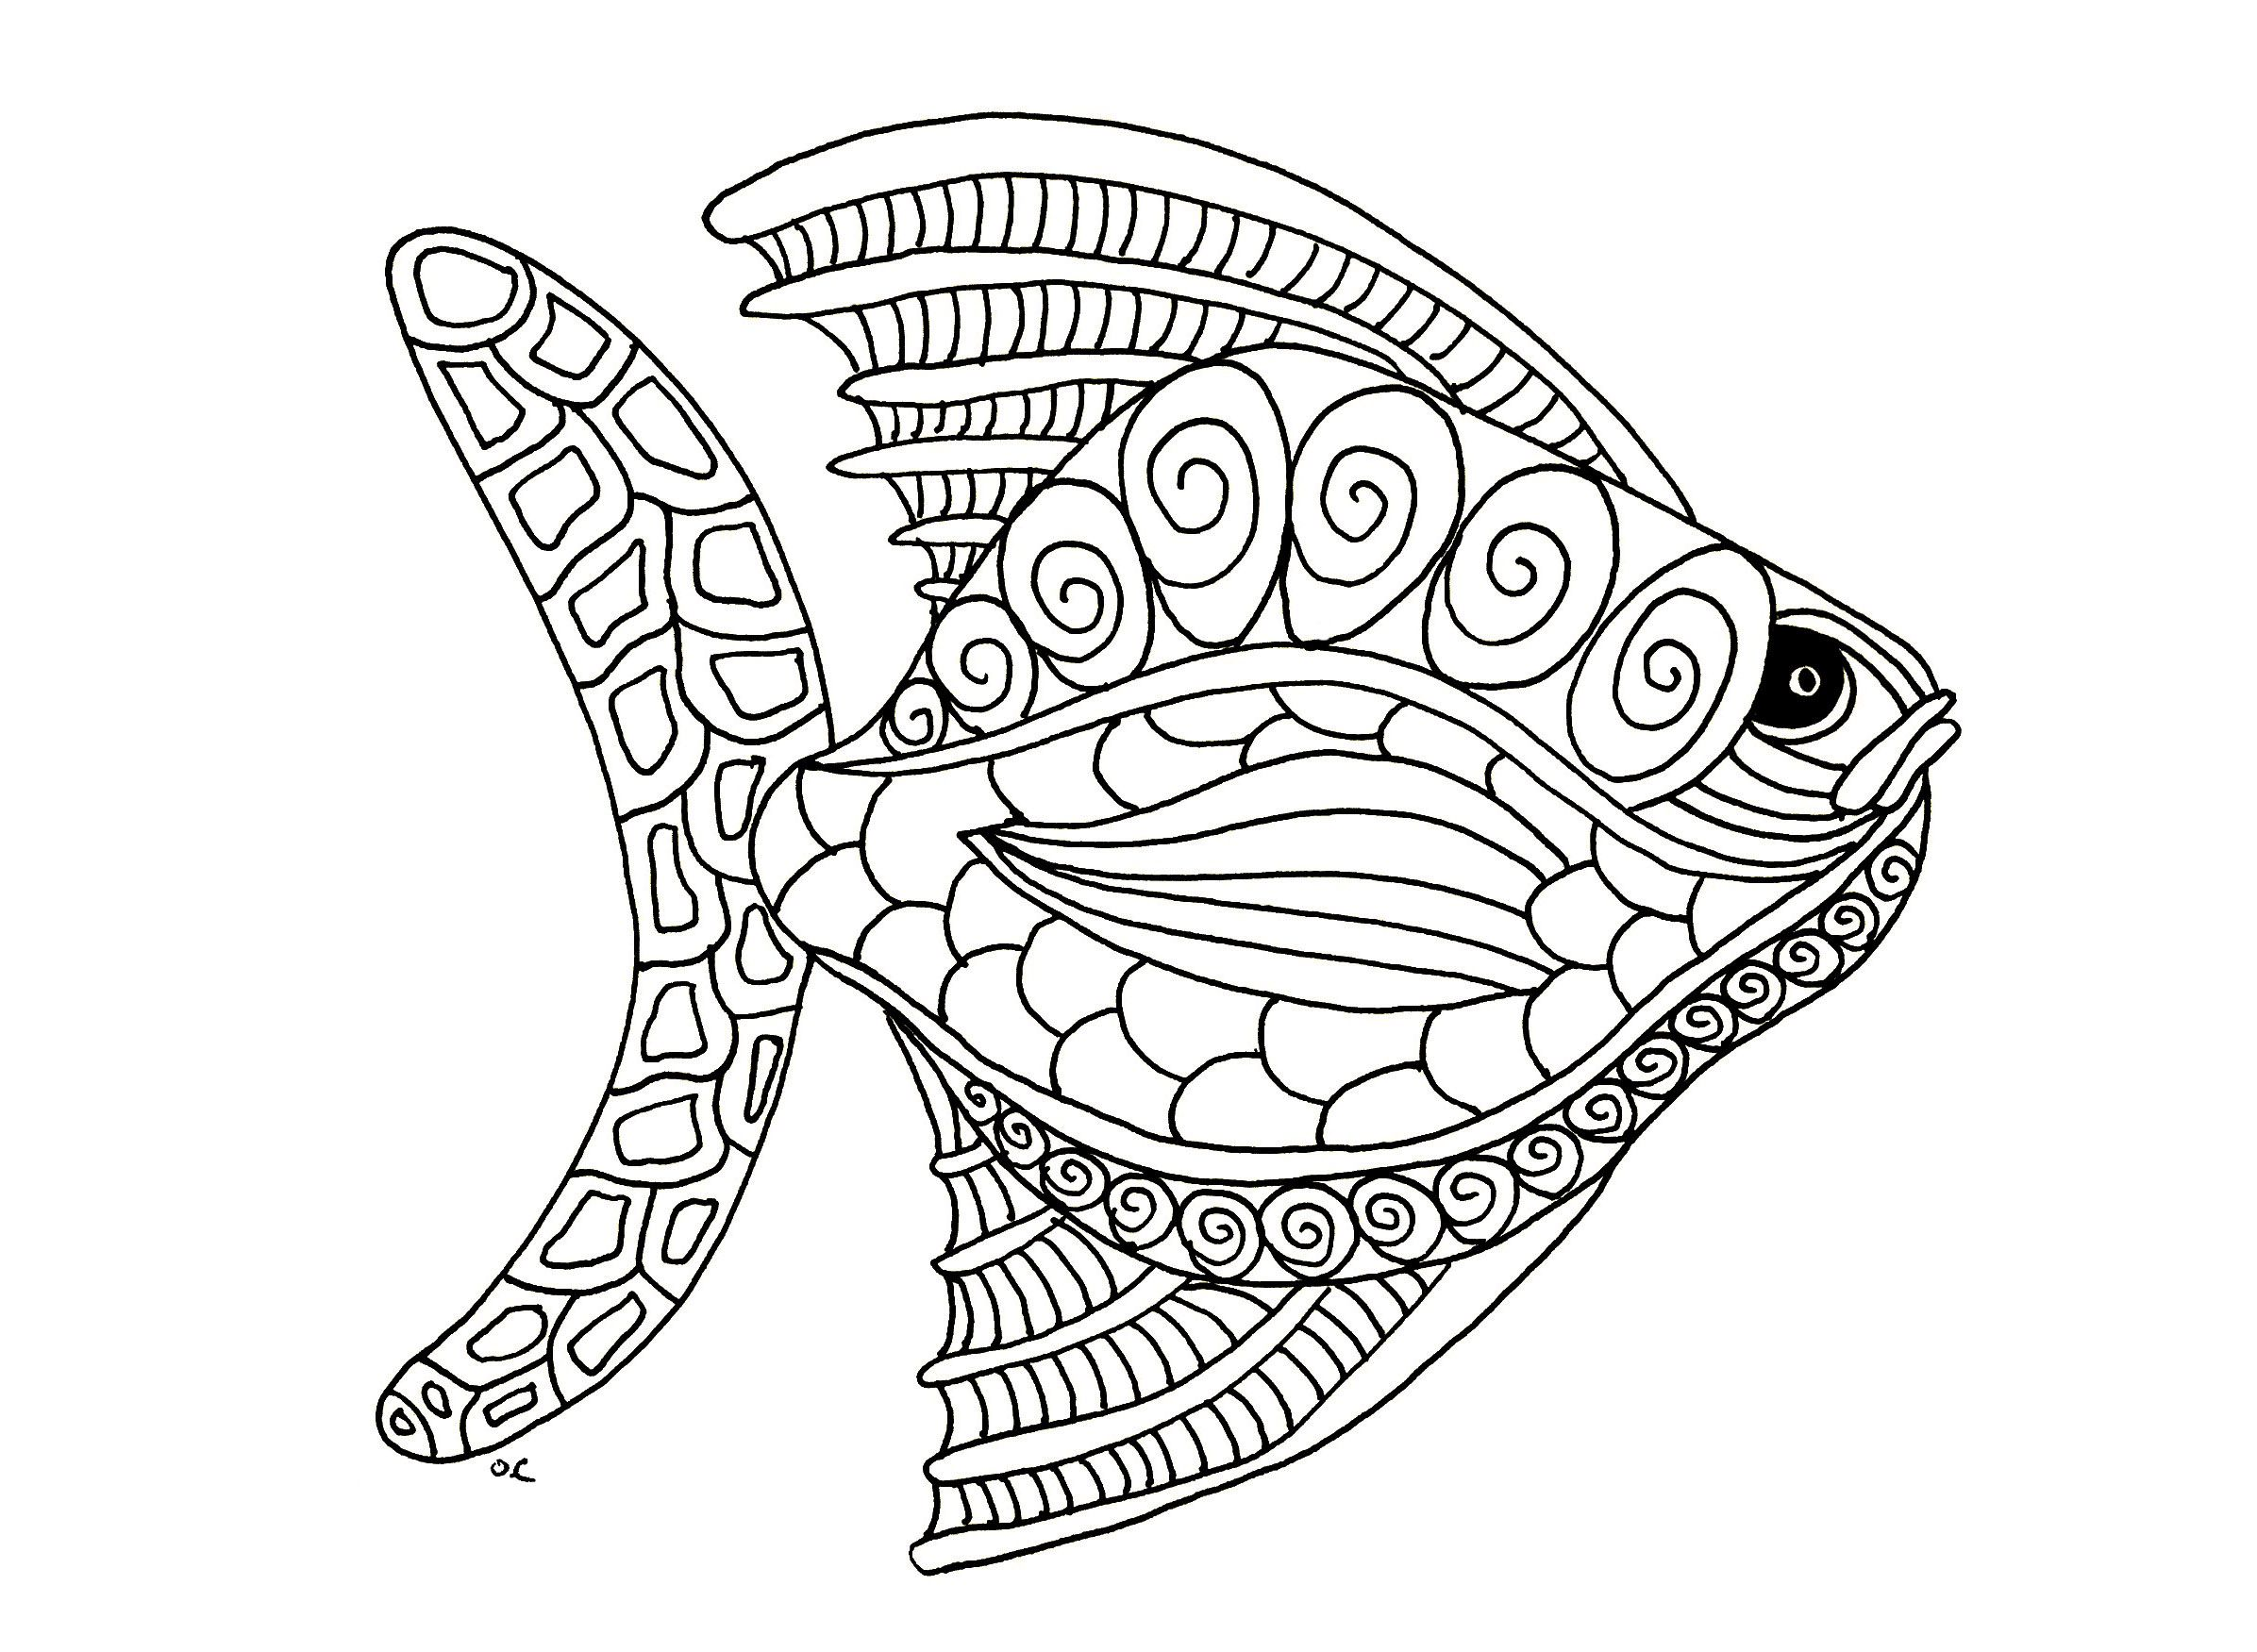 Galerie de coloriages gratuits coloriage poisson zentangle etape 1 par olivier poisson style - Dessin poisson stylise ...